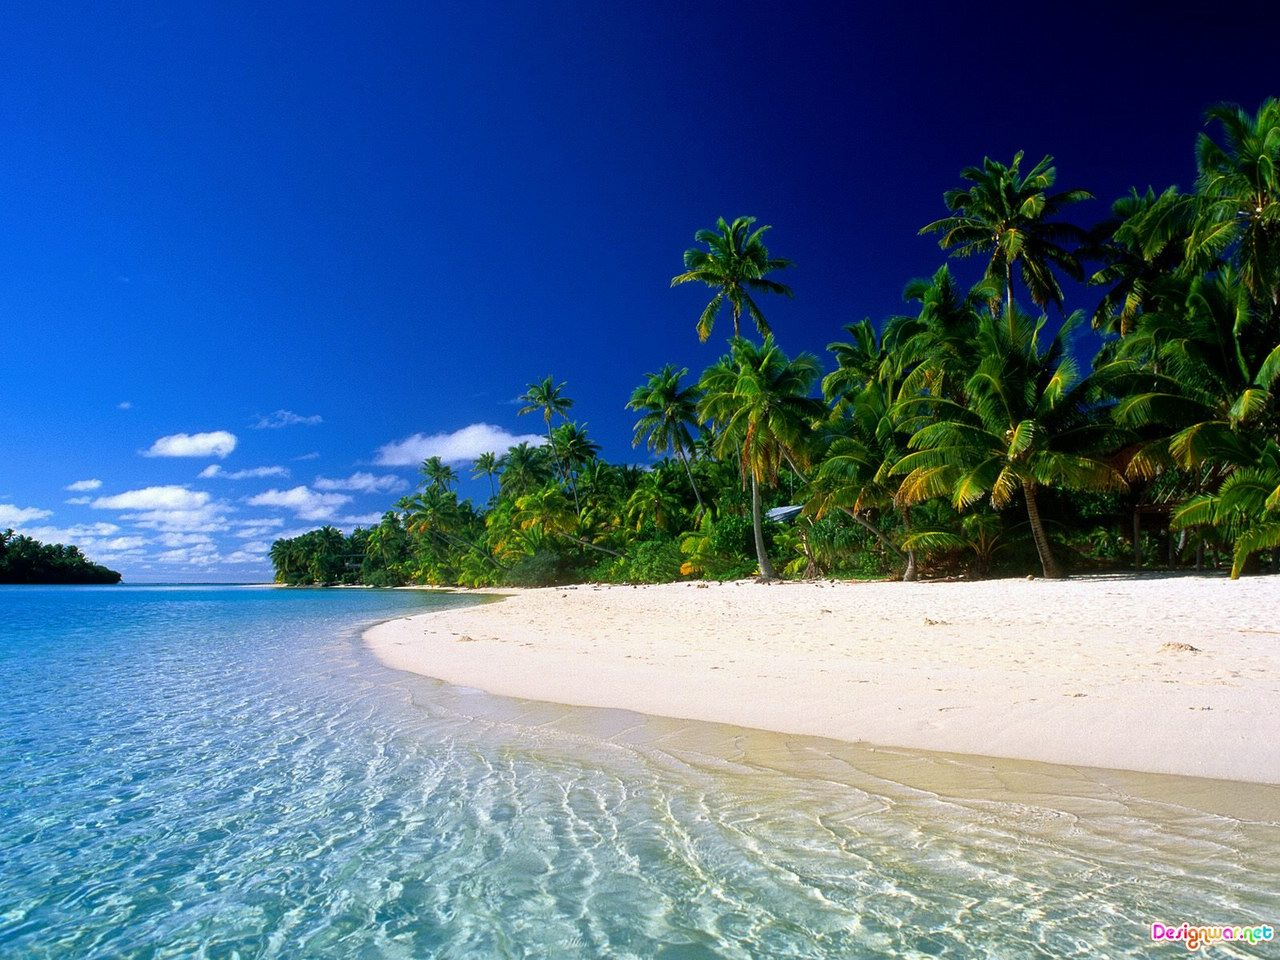 Tropical Beach hd Wallpaper High Quality WallpapersWallpaper 1280x960